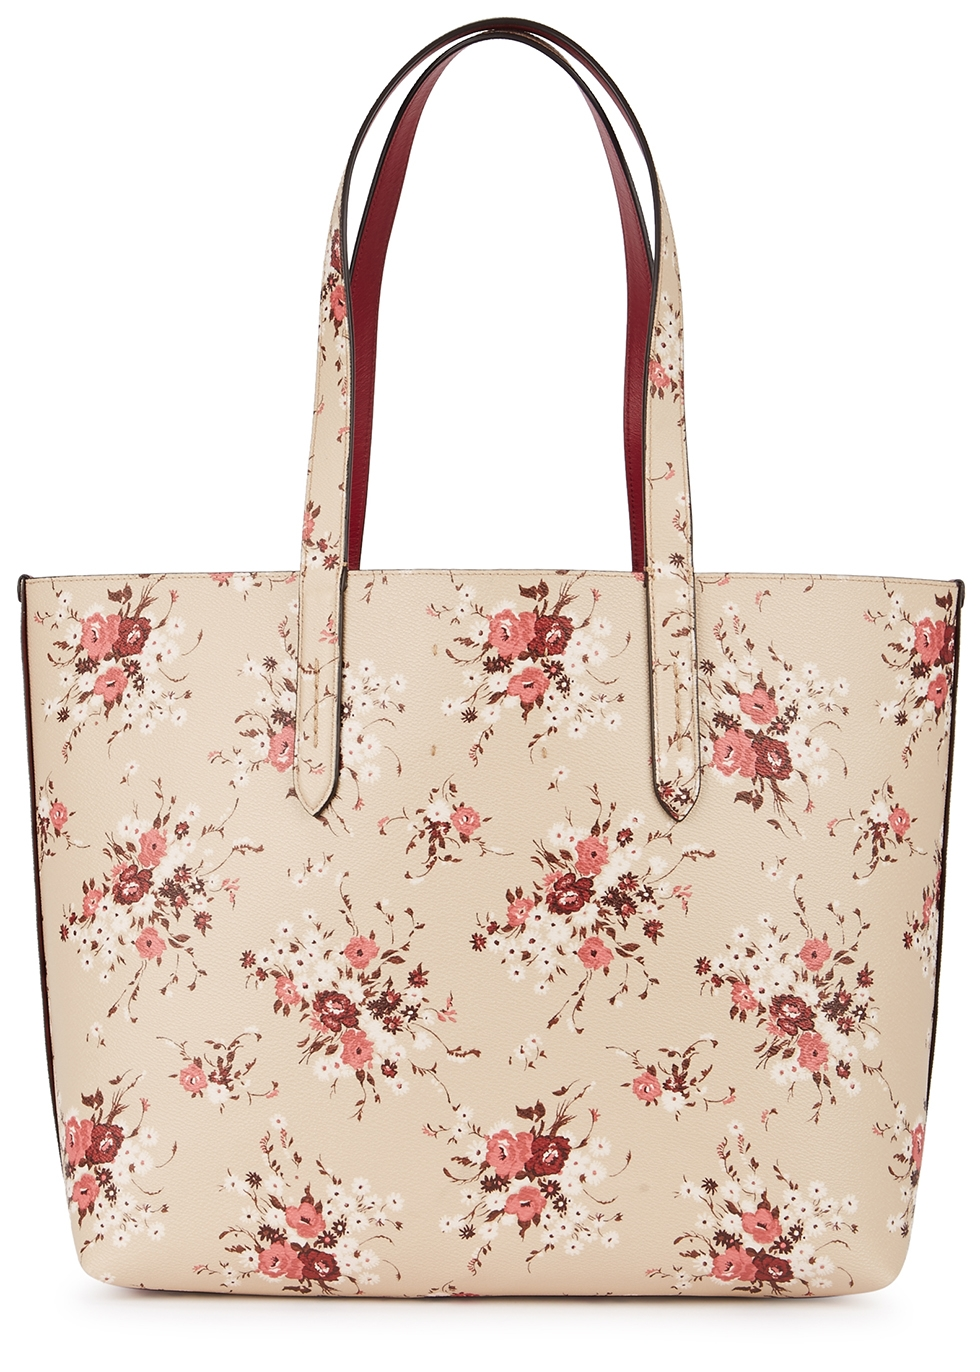 Floral-print leather tote - Coach